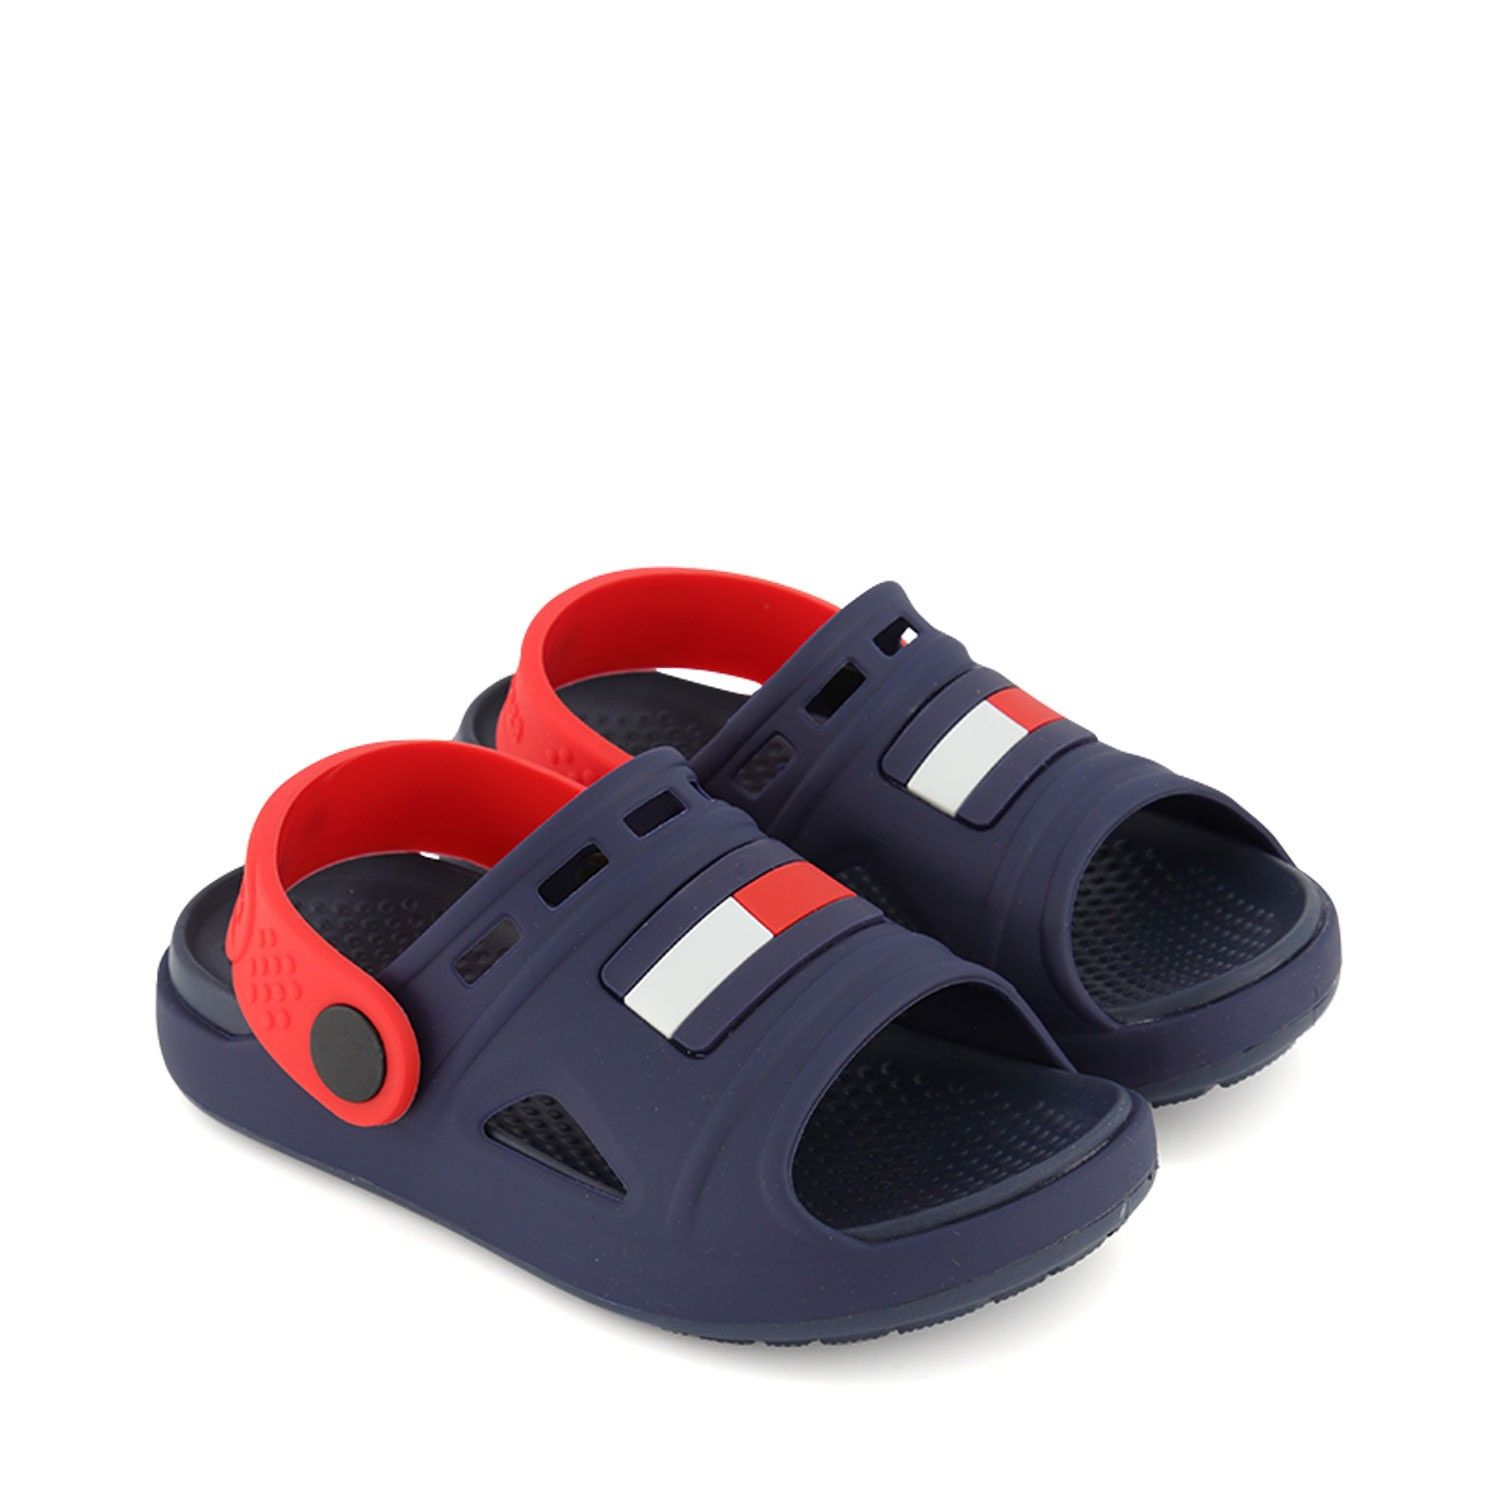 Picture of Tommy Hilfiger 30744 kids flipflops navy